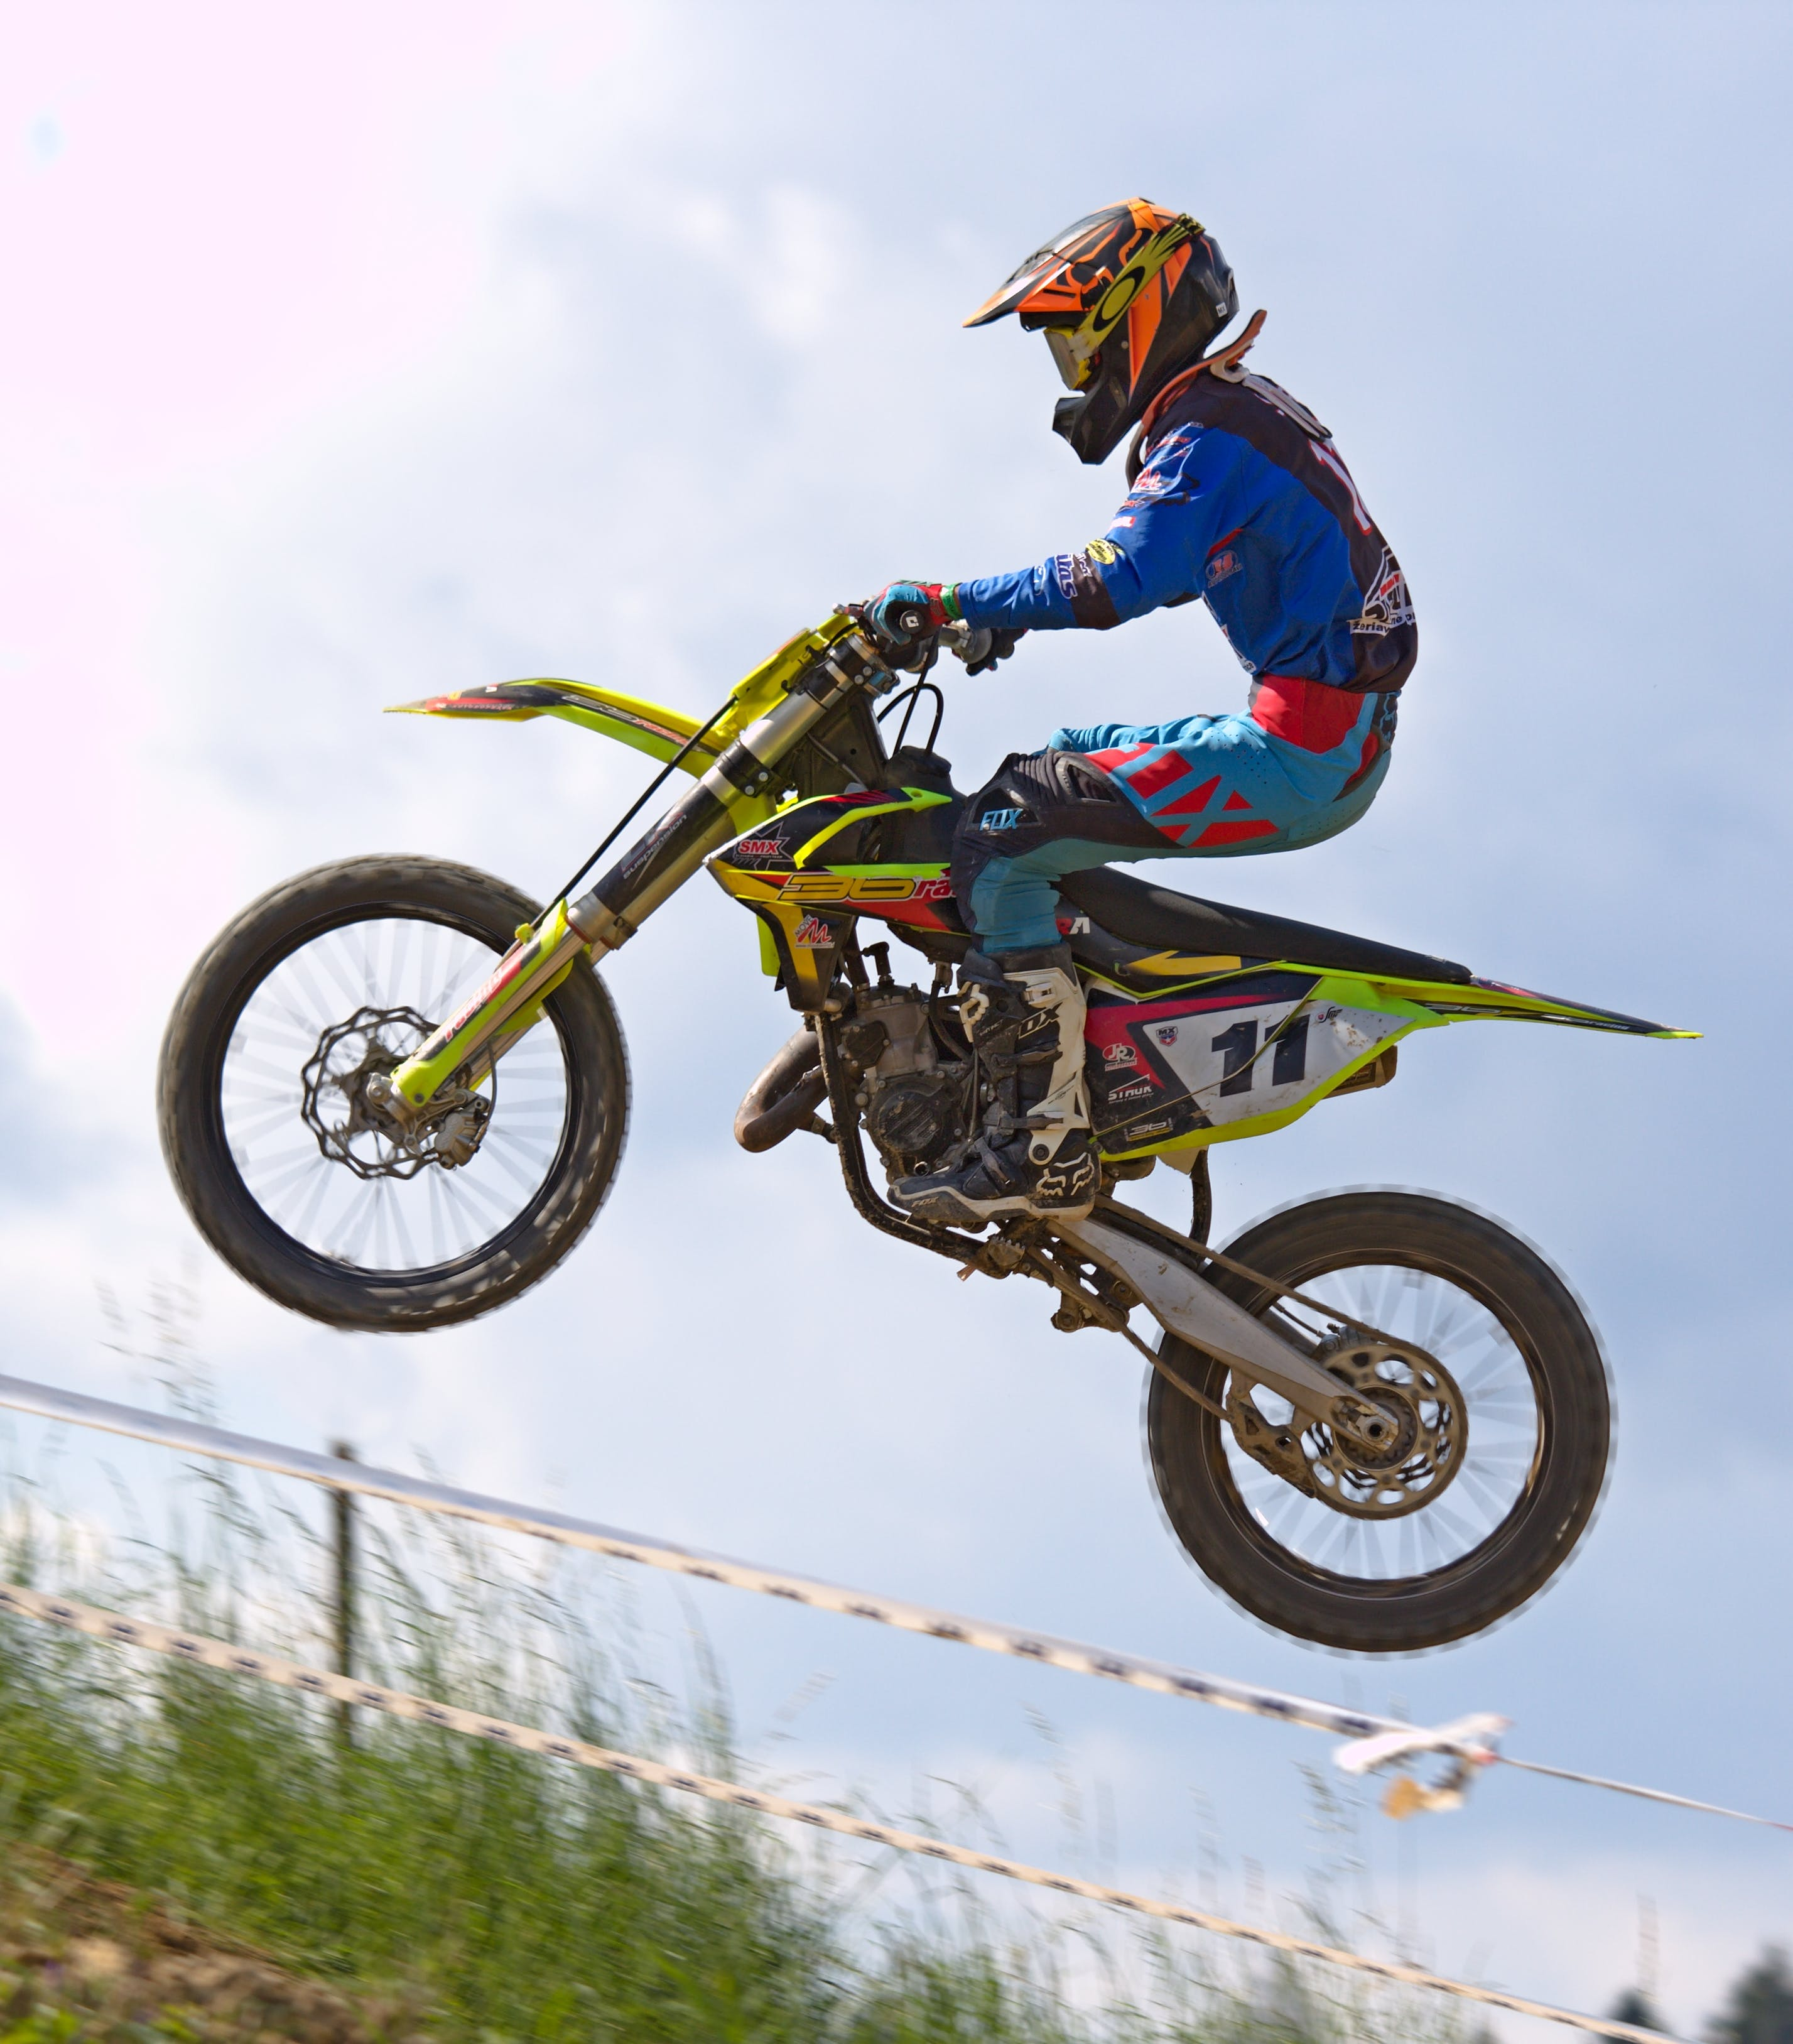 Person Doing Stunt in Motocross Dirt Bike